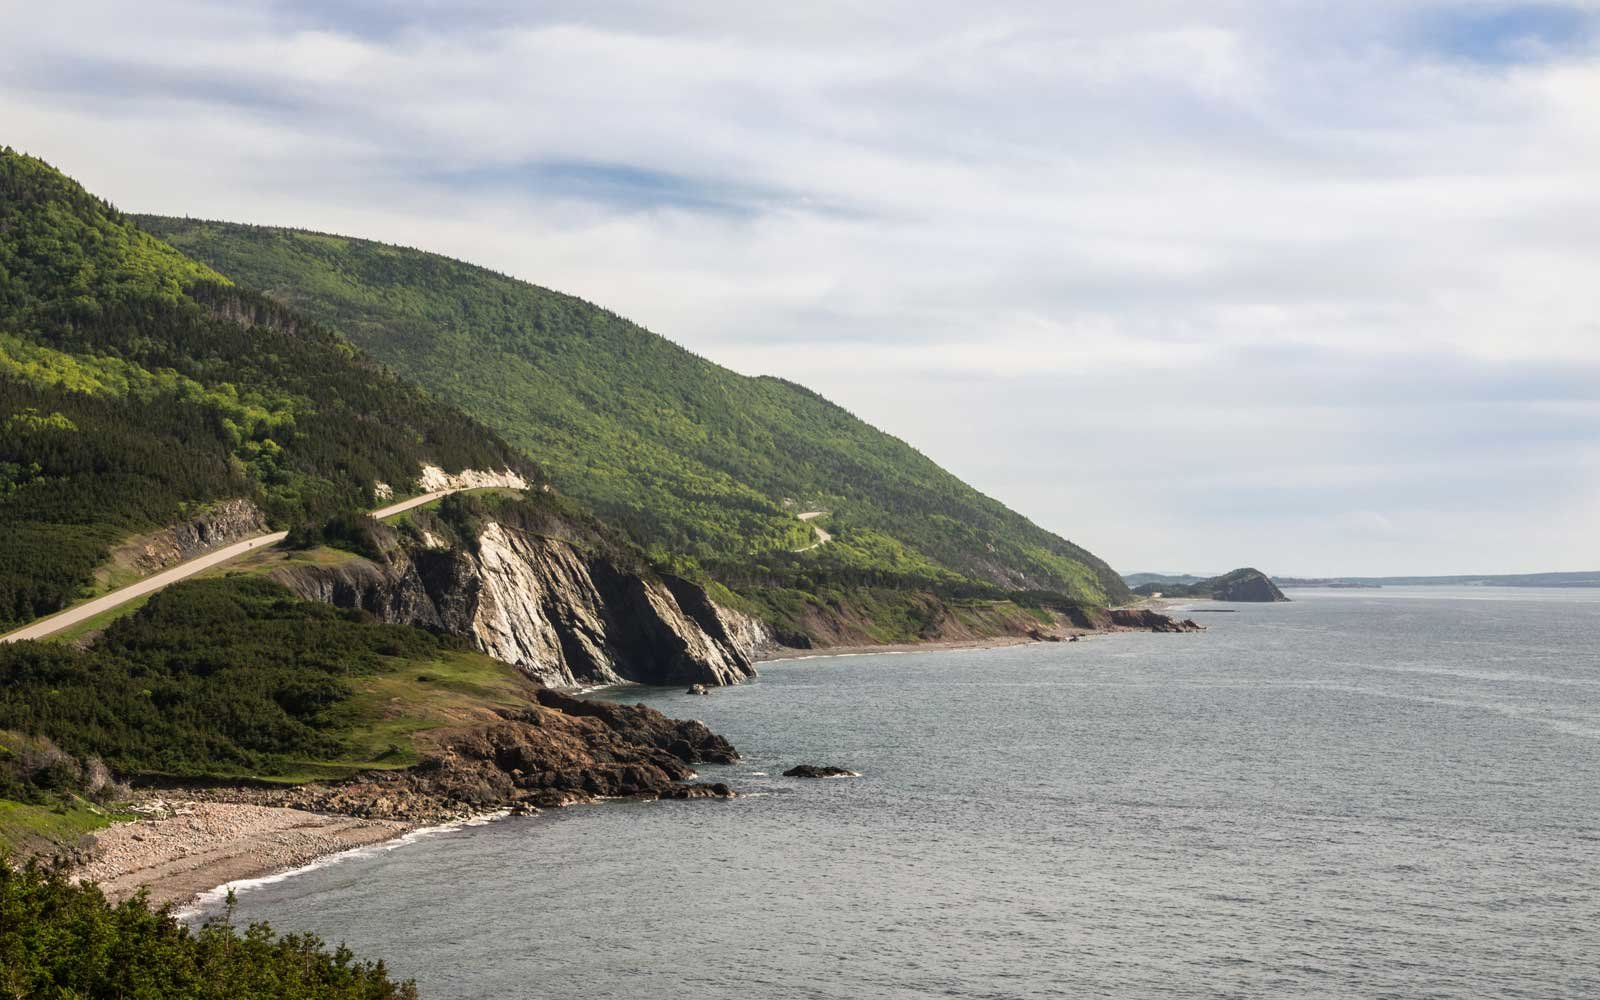 Cape Breton shoreline on the west coast of the island.